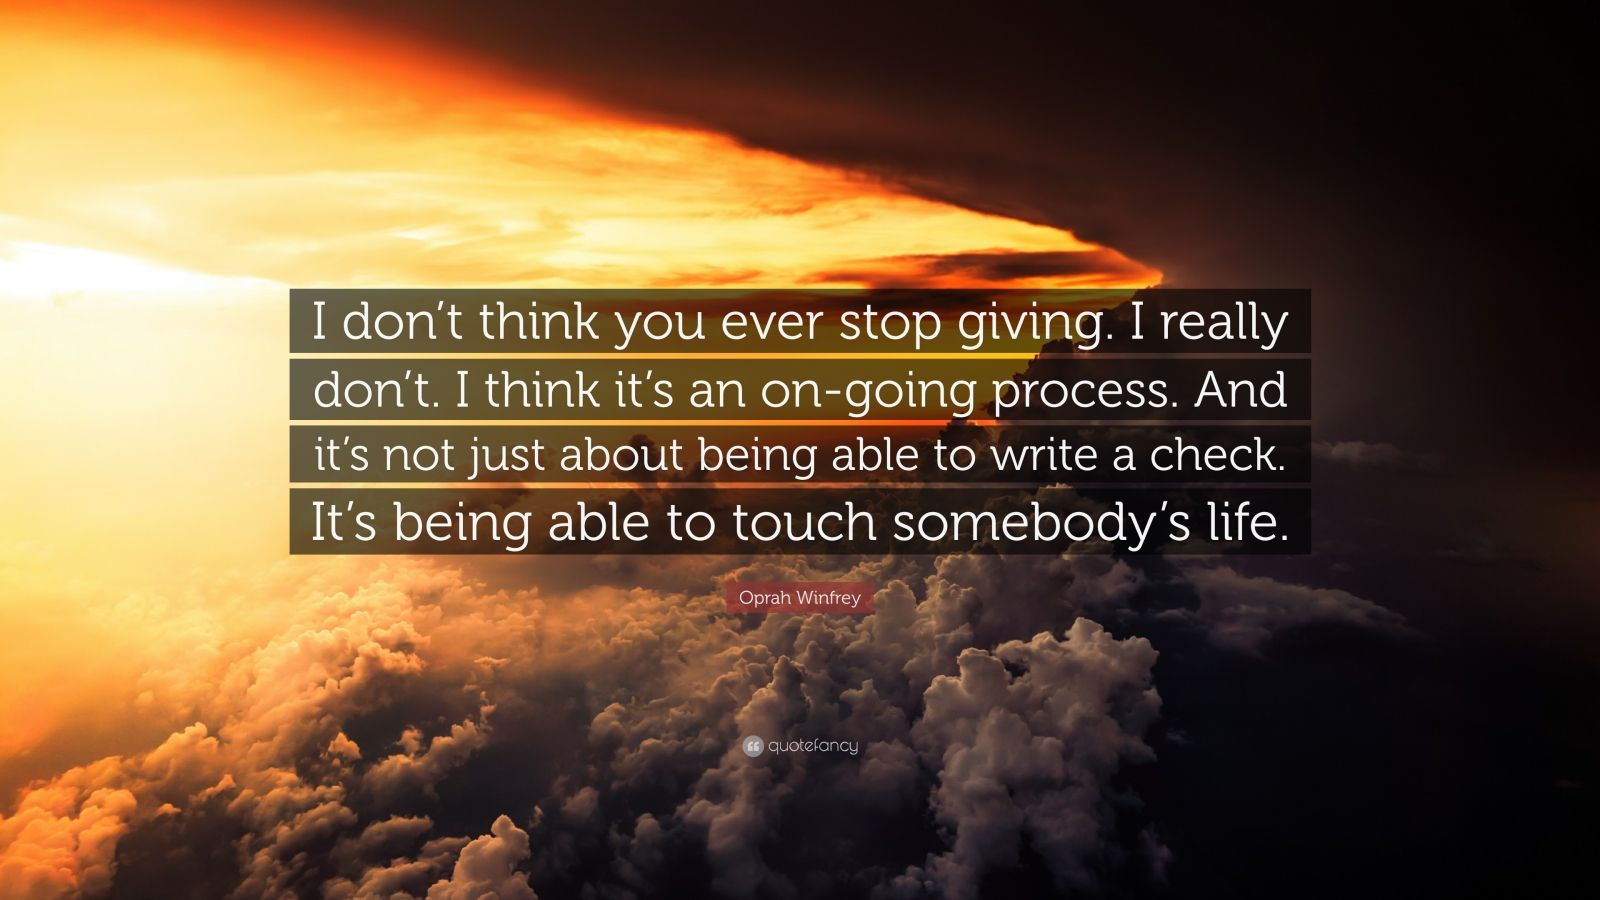 """Oprah Winfrey Quote: """"I don't think you ever stop giving. I really don't. I think it's an on-going process. And it's not just about being able to write a check. It's being able to touch somebody's life."""""""